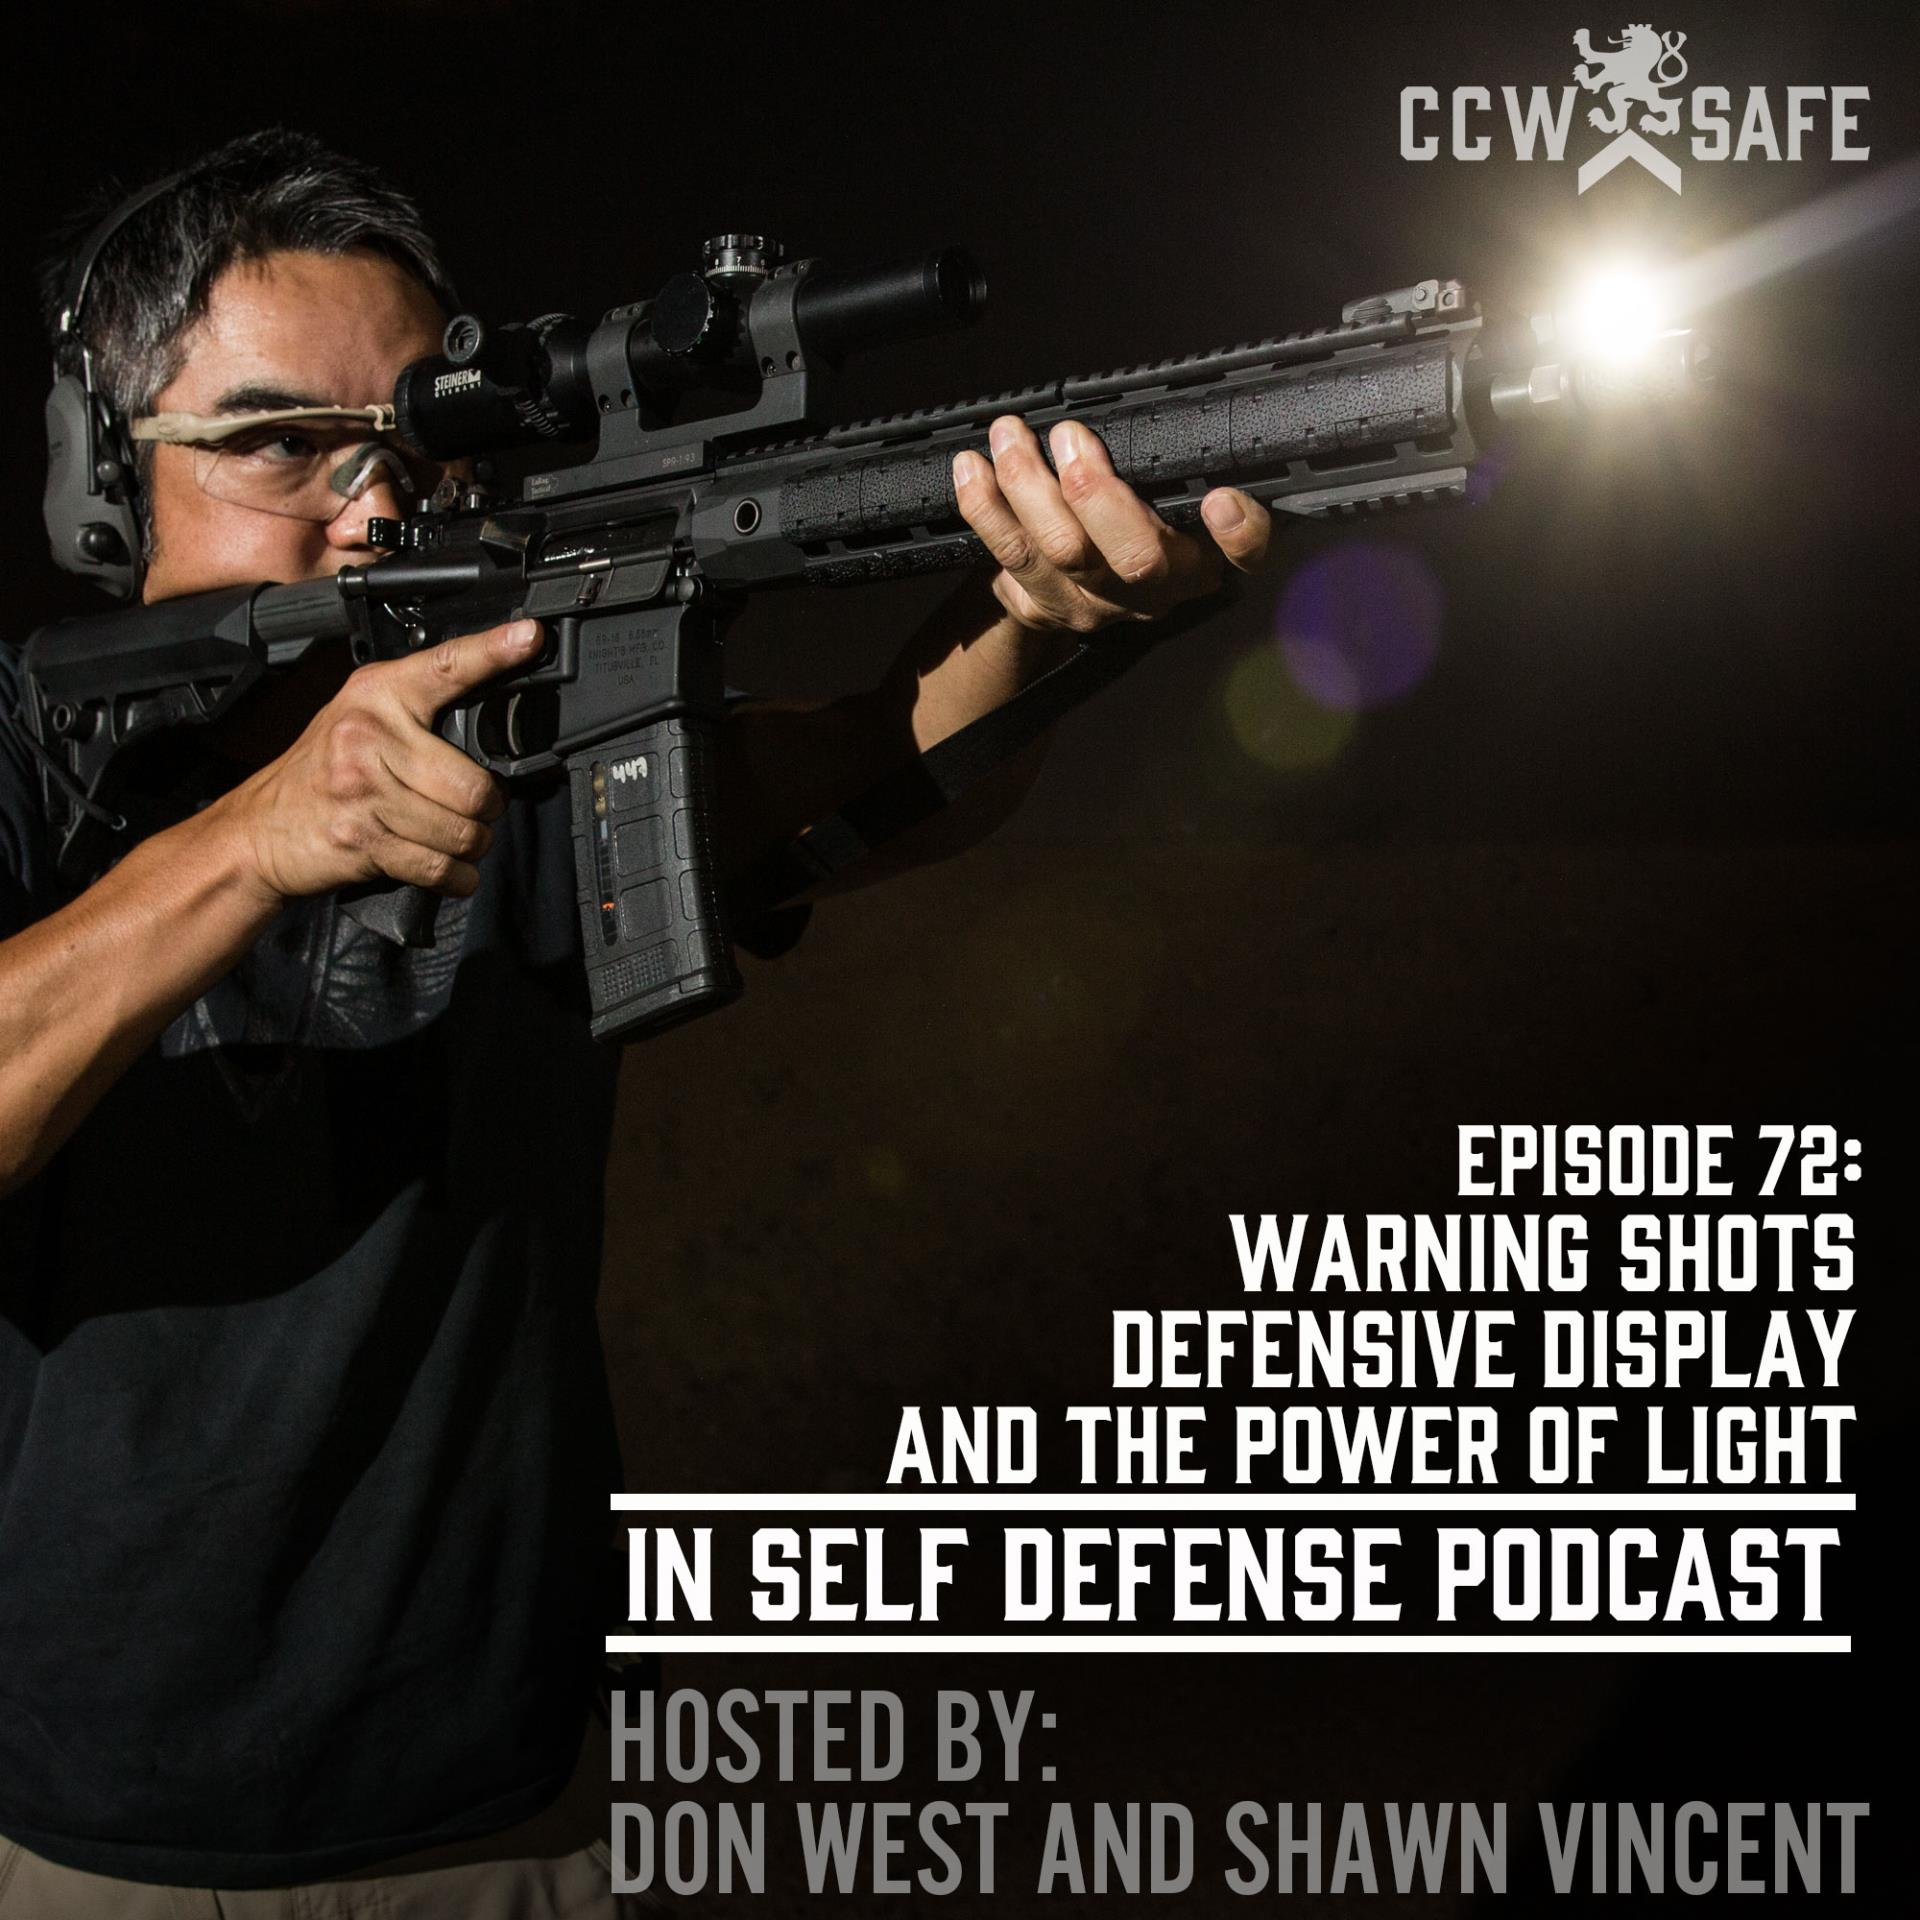 In Self Defense - Episode 72: Warning Shots, Defensive Display, and the Power of Light